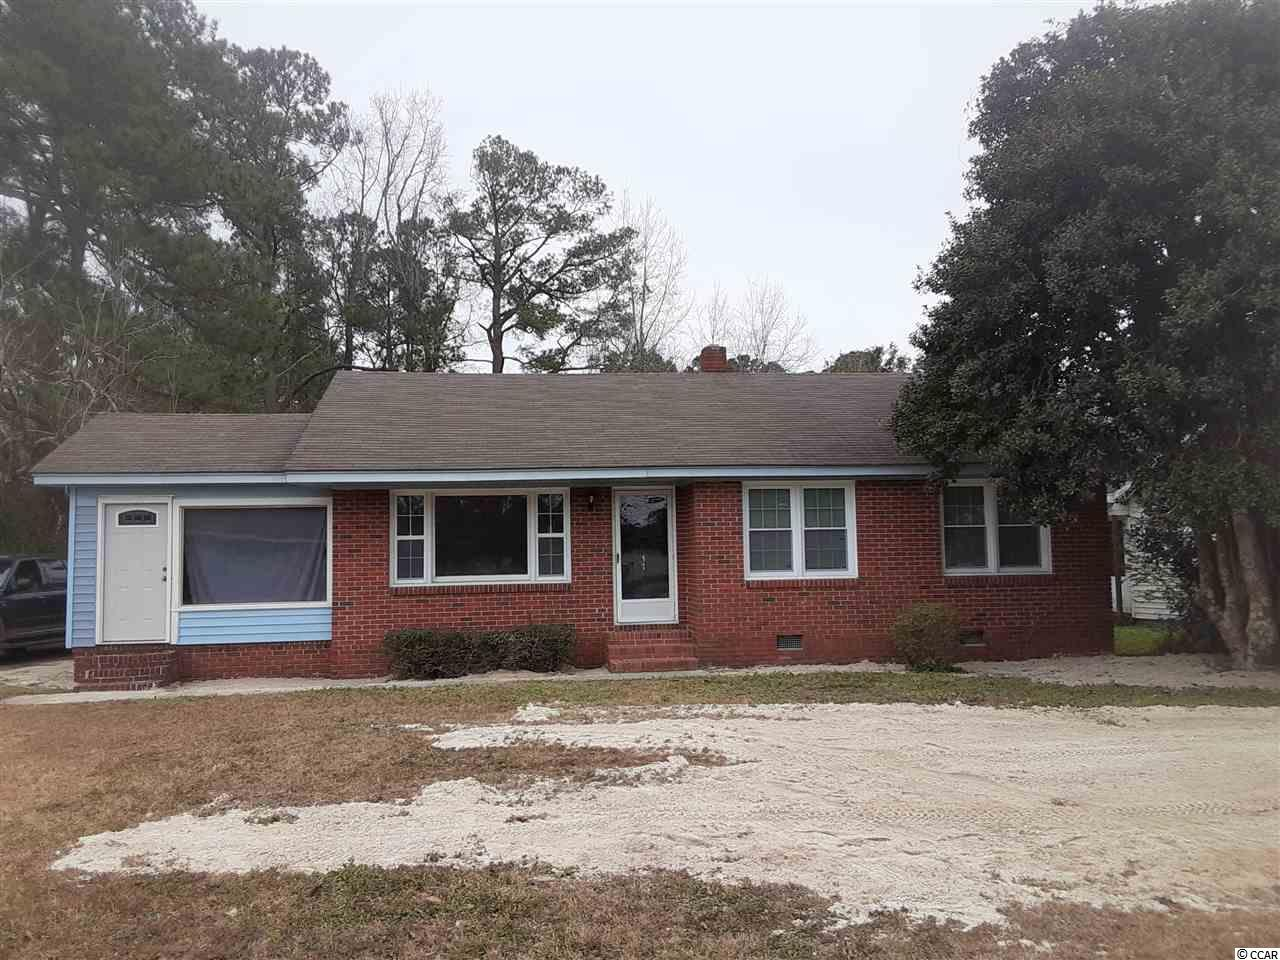 Great starter home or investment property. 3 bedroom and 1 bath with an added bonus room could be used a 4th bedroom. Located just minutes from Historic Georgetown shopping and dining. Has new A/C unit and fresh paint. Square footage is approximate and not guaranteed. Buyer is responsible for verification.